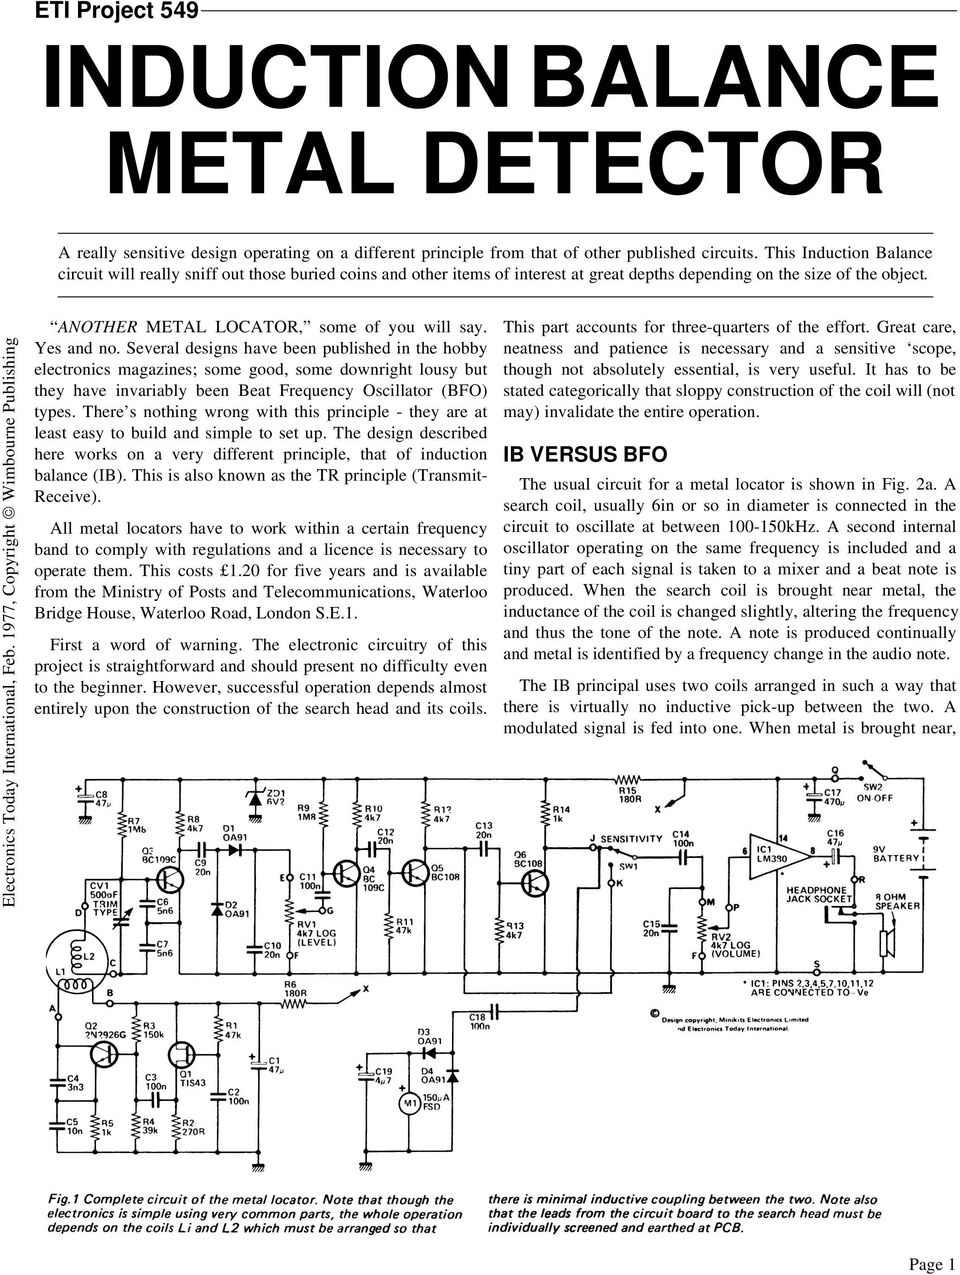 Eti Project 549 Induction Balance Metal Detector Pdf Single Chip Circuit Electronic Circuits And Diagram 1977 Copyright Wimbourne Publishing Another Locator Some Of You Will Say Yes